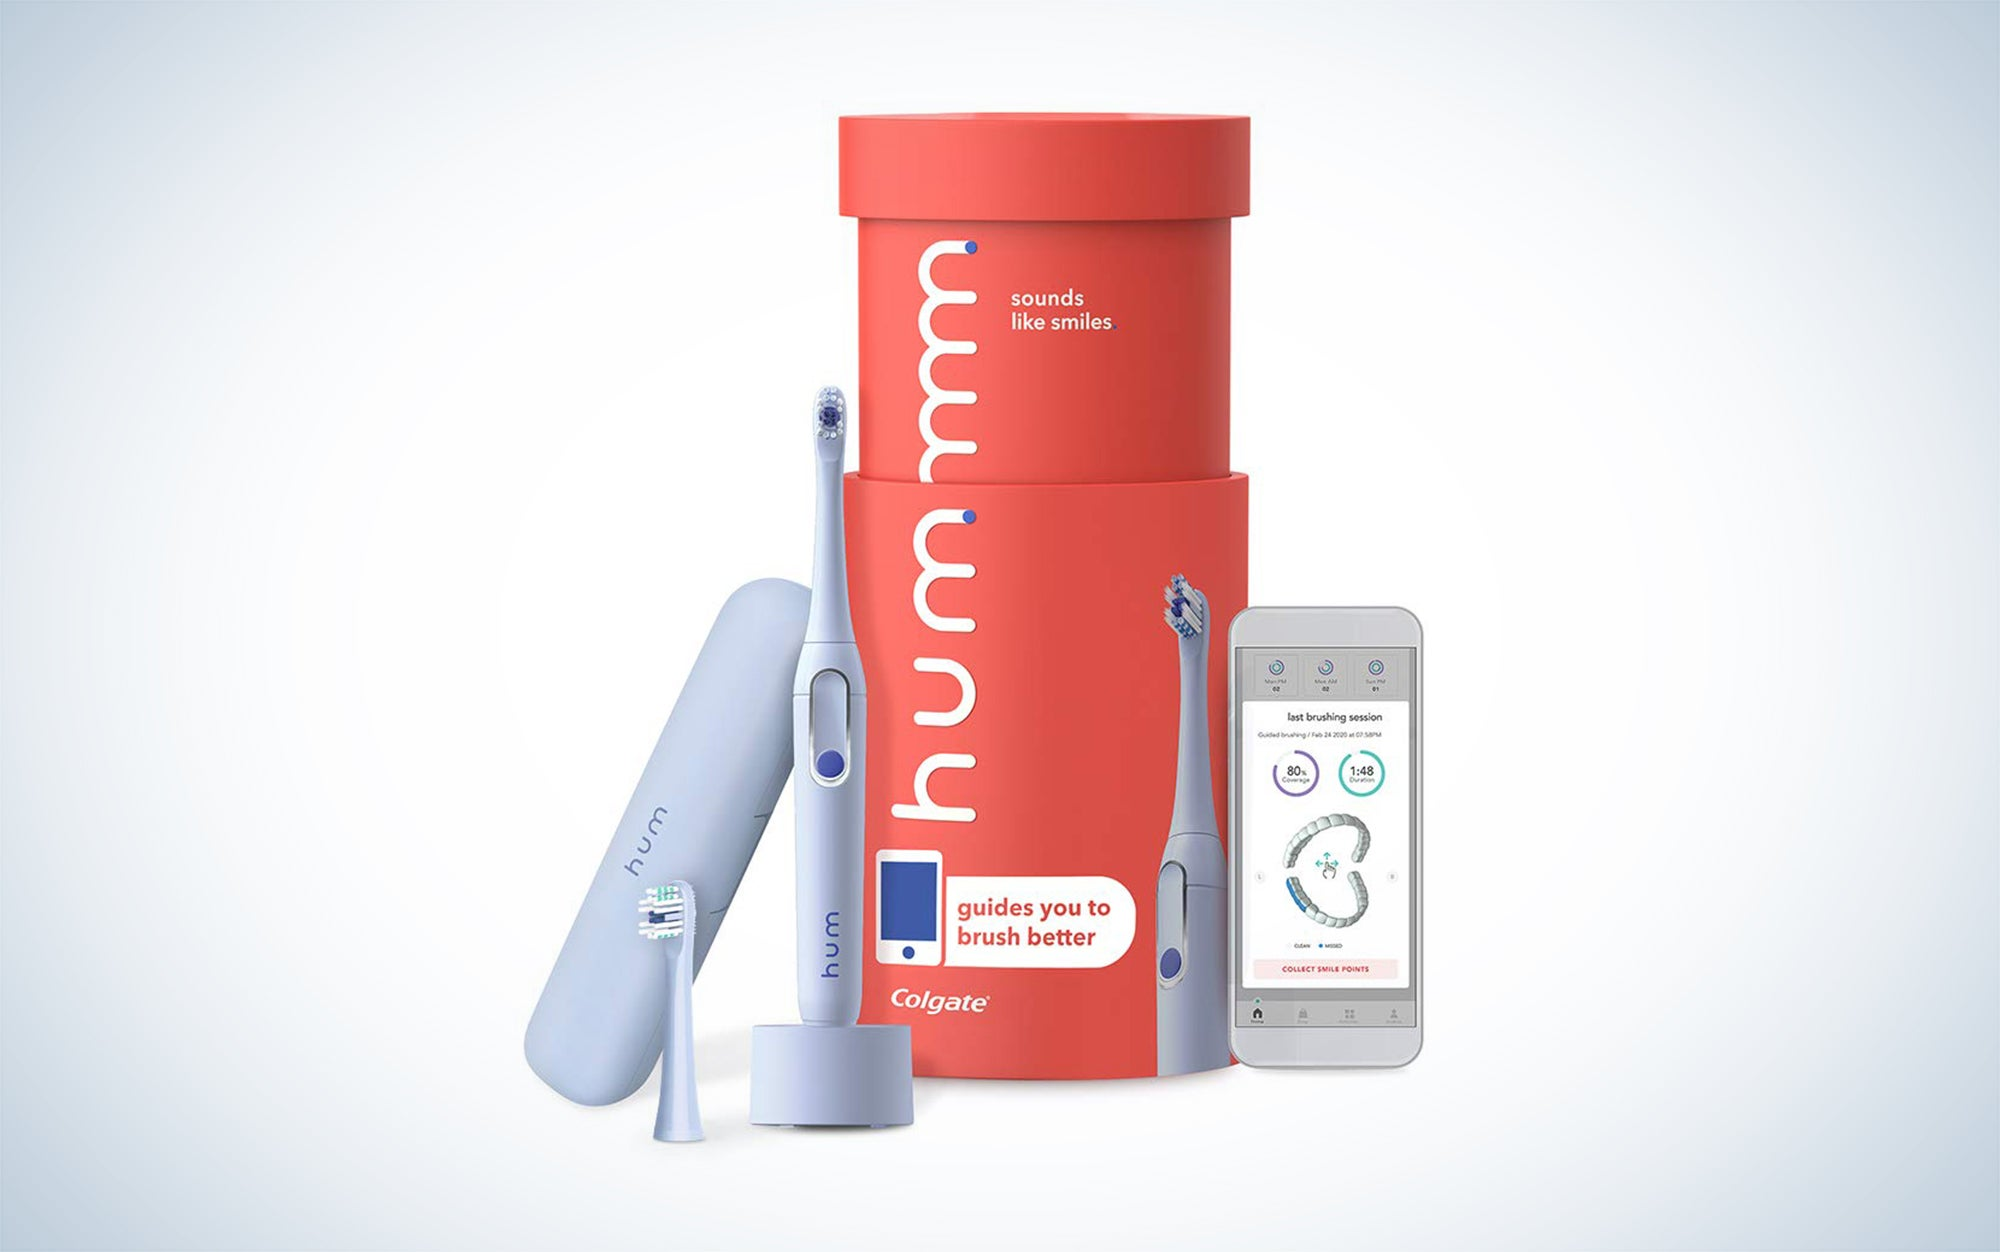 hum by Colgate Smart Electric Toothbrush Kit, Rechargeable Sonic Toothbrush with Travel Case and Replacement Head is the best travel electric toothbrush.